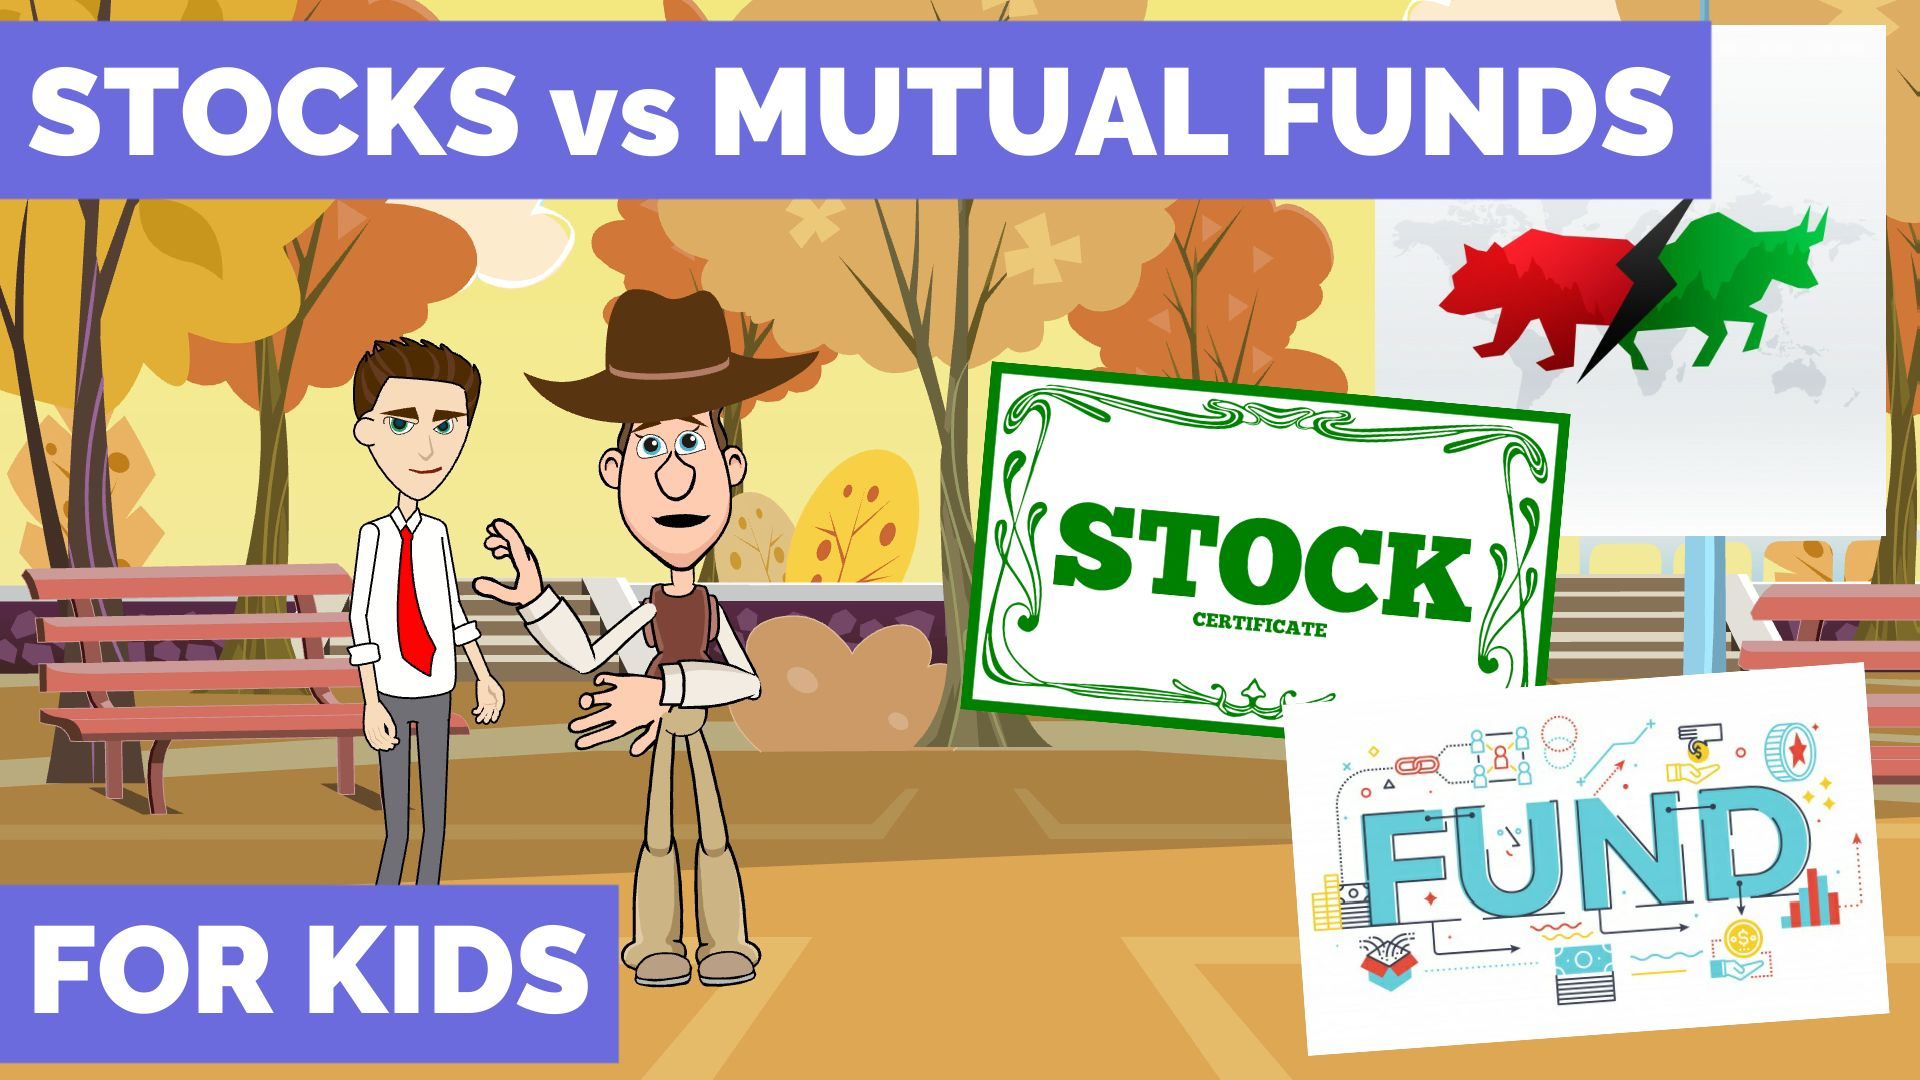 Investing Directly in Stocks vs Mutual Funds